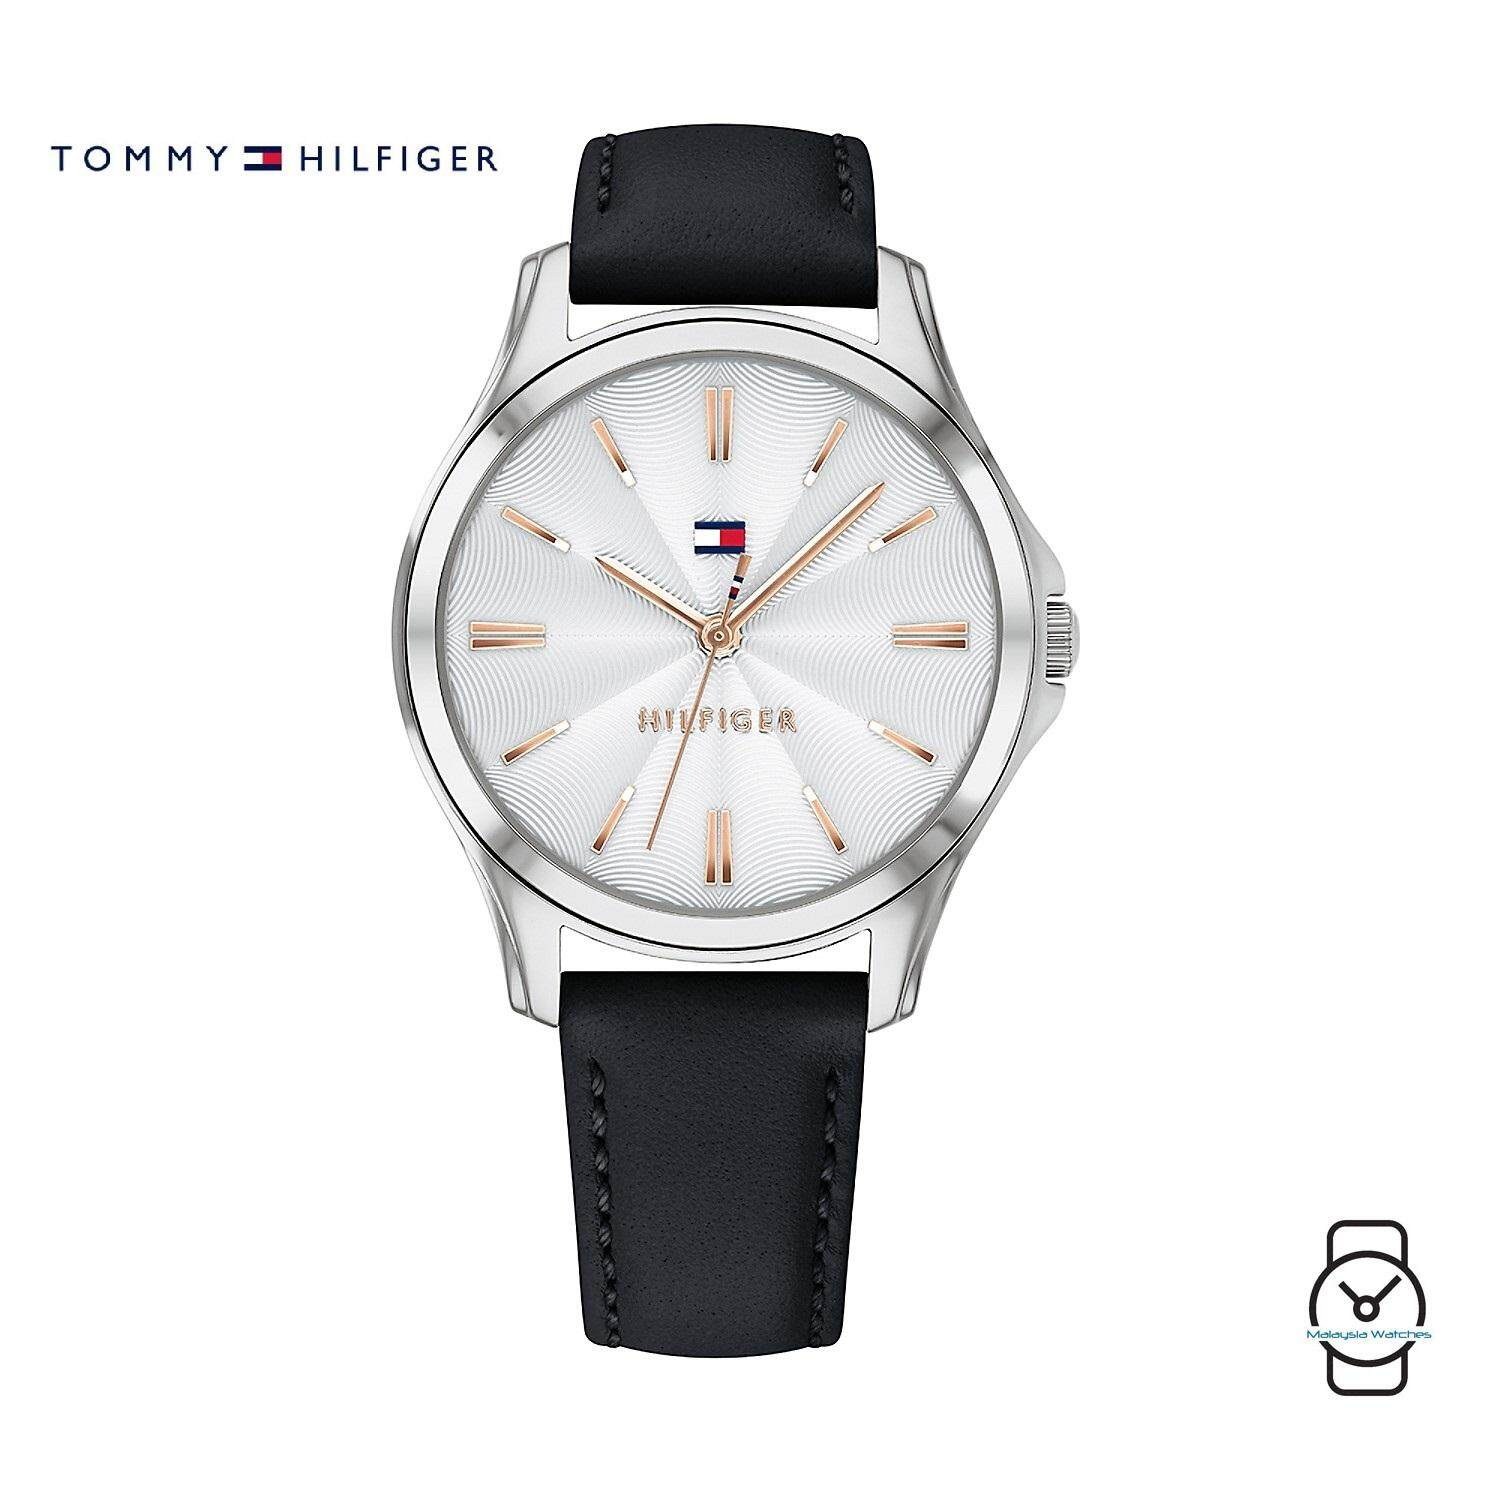 (100% Original) Tommy Hilfiger Women s 1781953 Casual Black Leather Watch  (Black) 135e4f97bb1